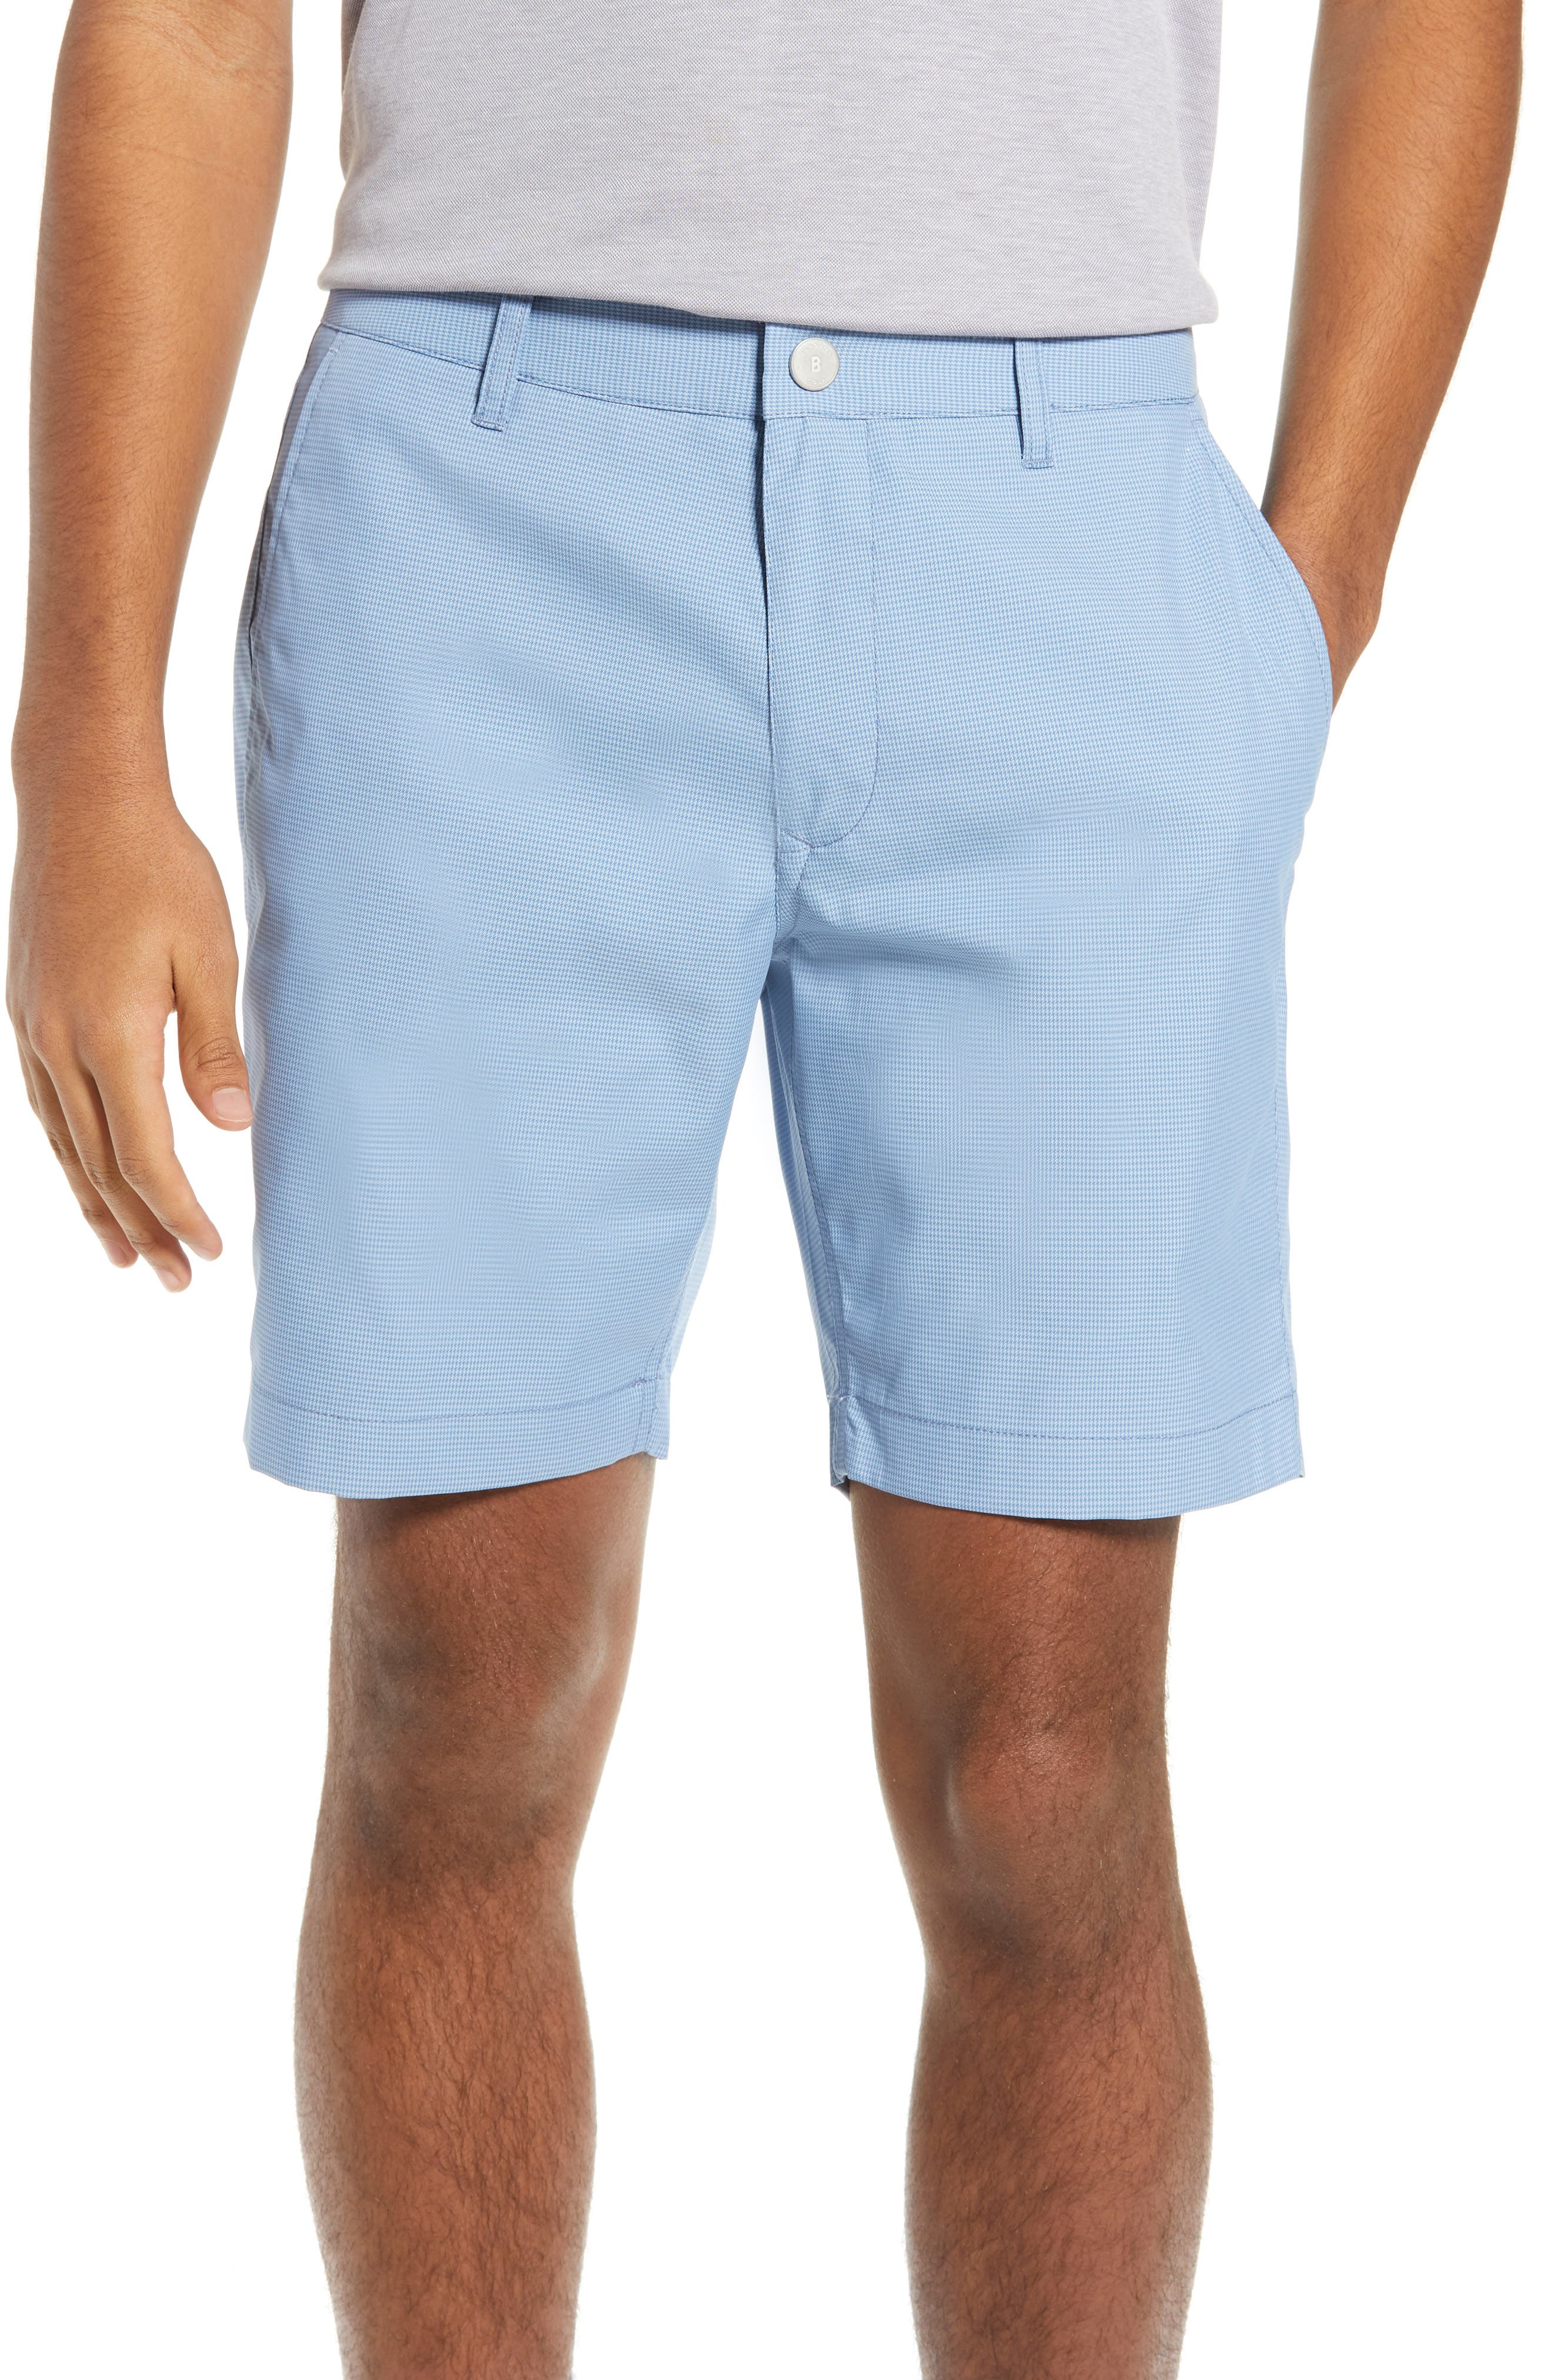 BONOBOS, The Highland Micro Houndstooth Golf Shorts, Main thumbnail 1, color, BLUE MINICHECK C3